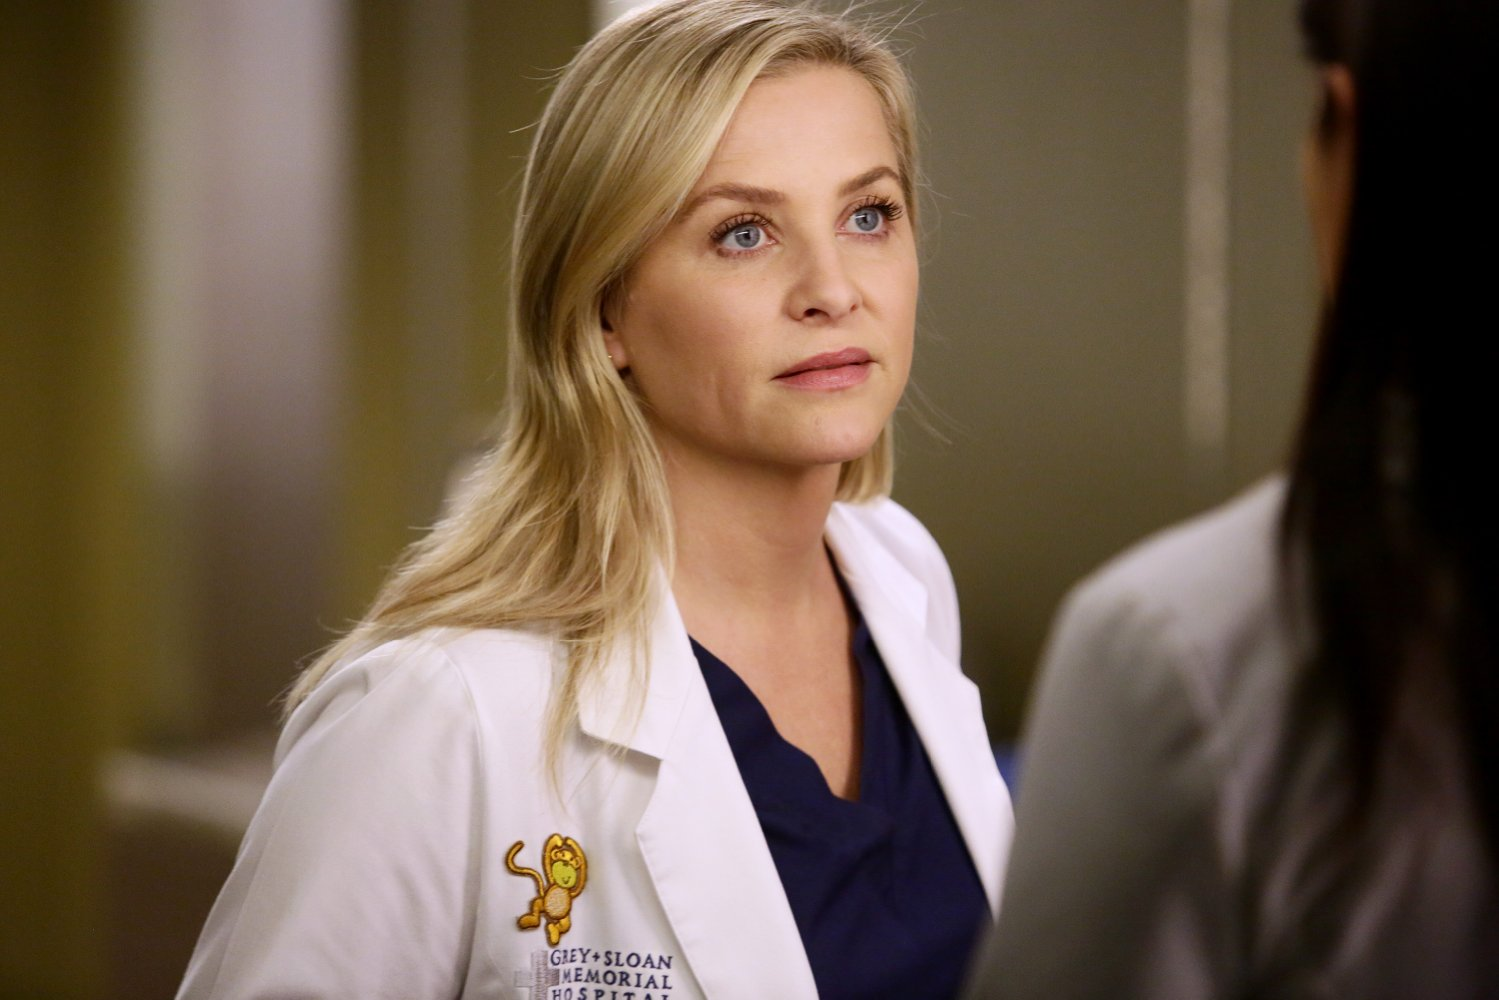 Not absolutely Greys anatomy and lesbian consider